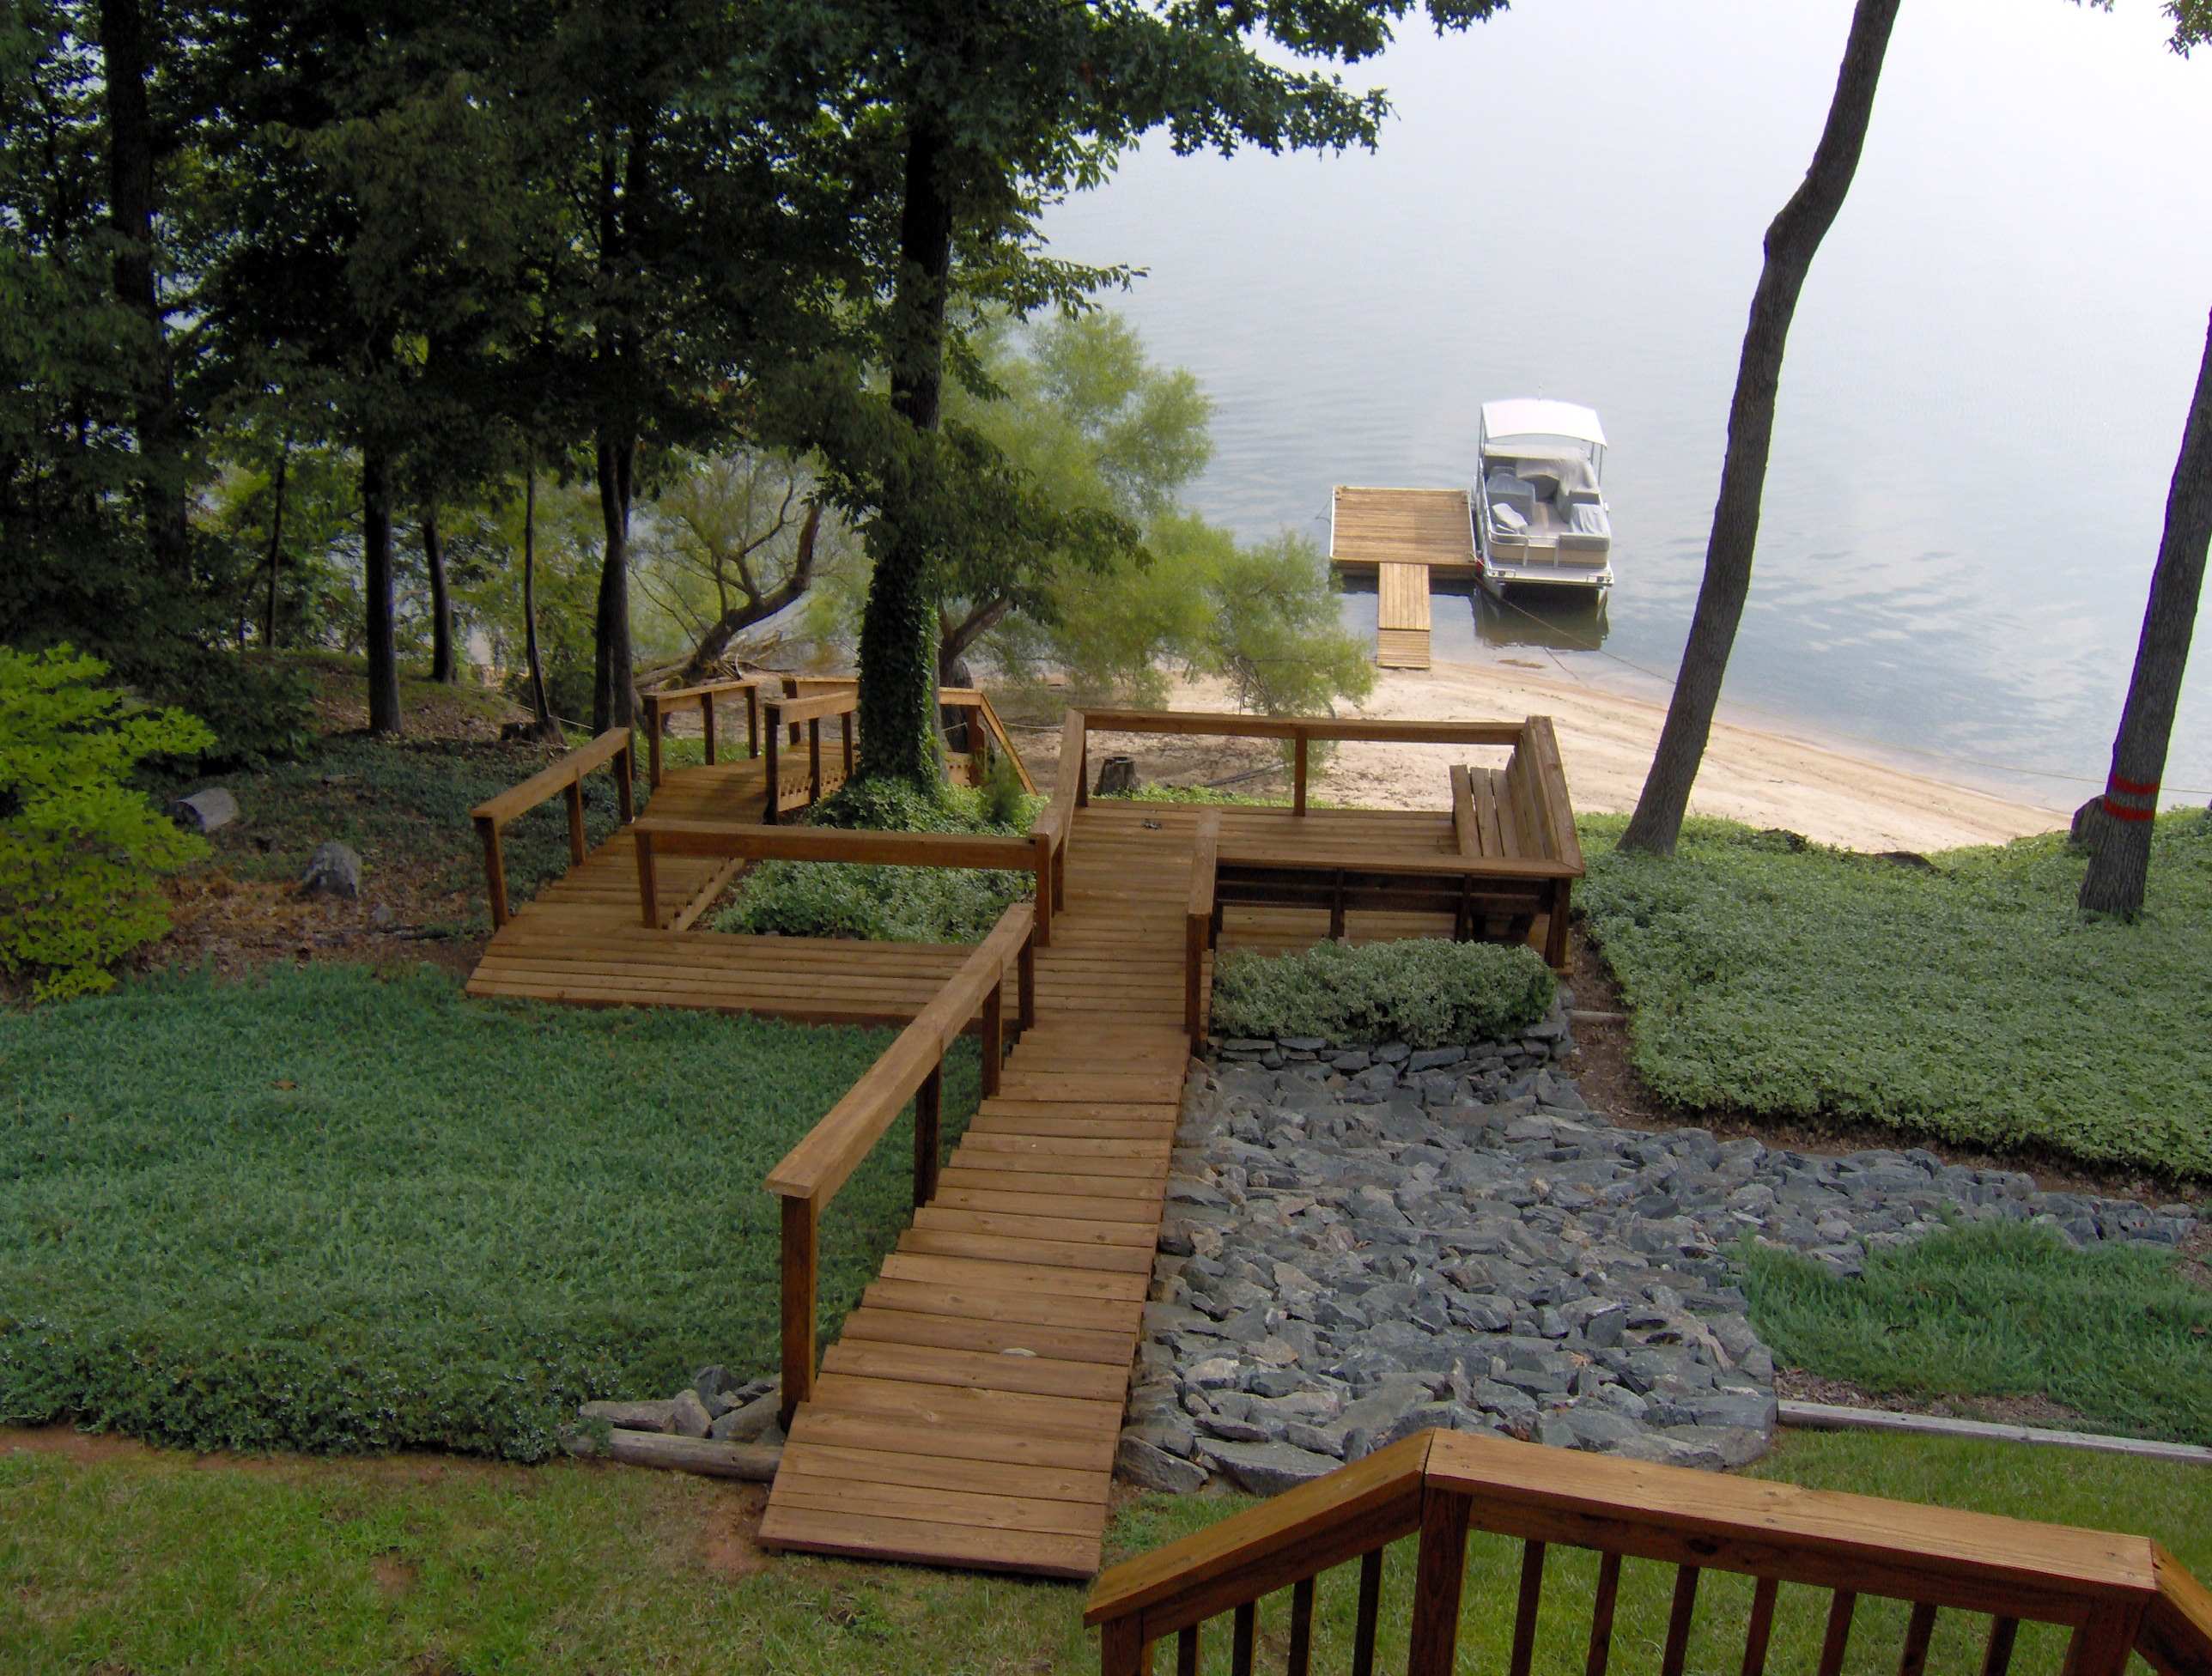 Decks Amp Docks Renew Crew Of Lake Gaston Kerr Lake And